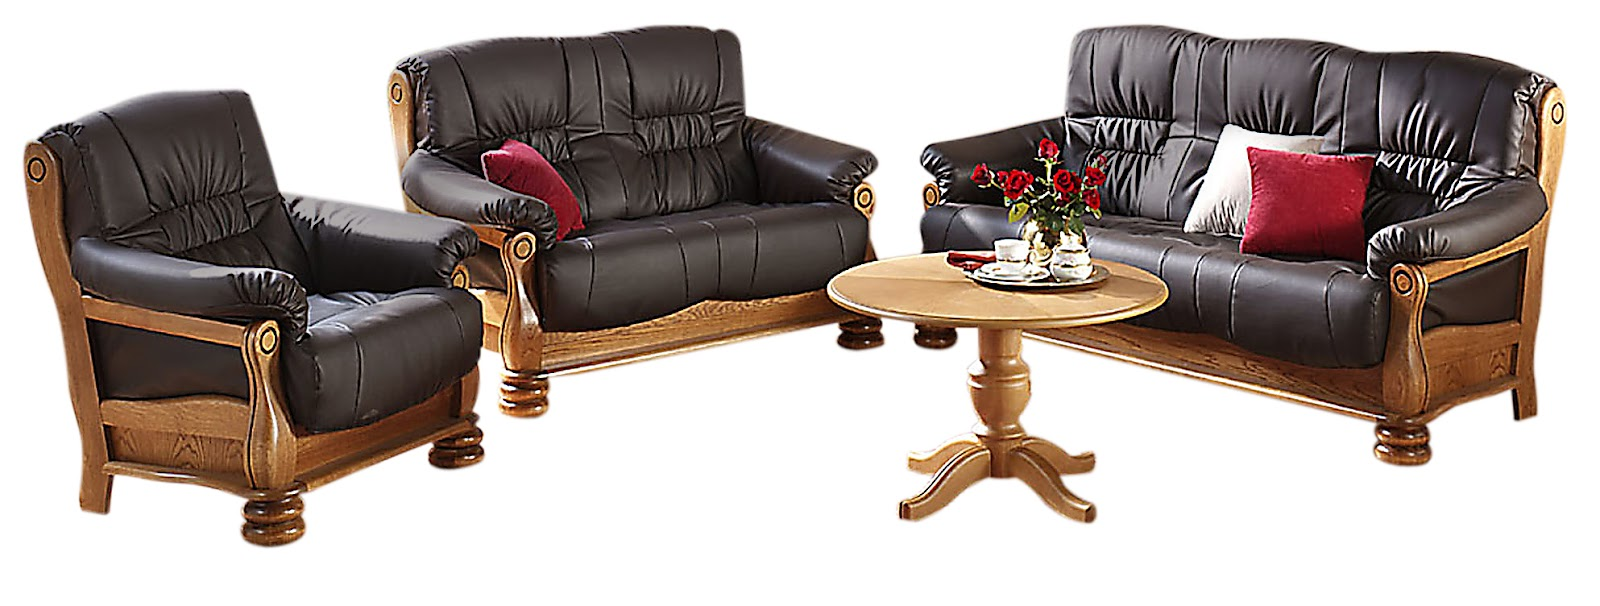 Modern wood furniture sofa -  Wooden Sofa Furniture